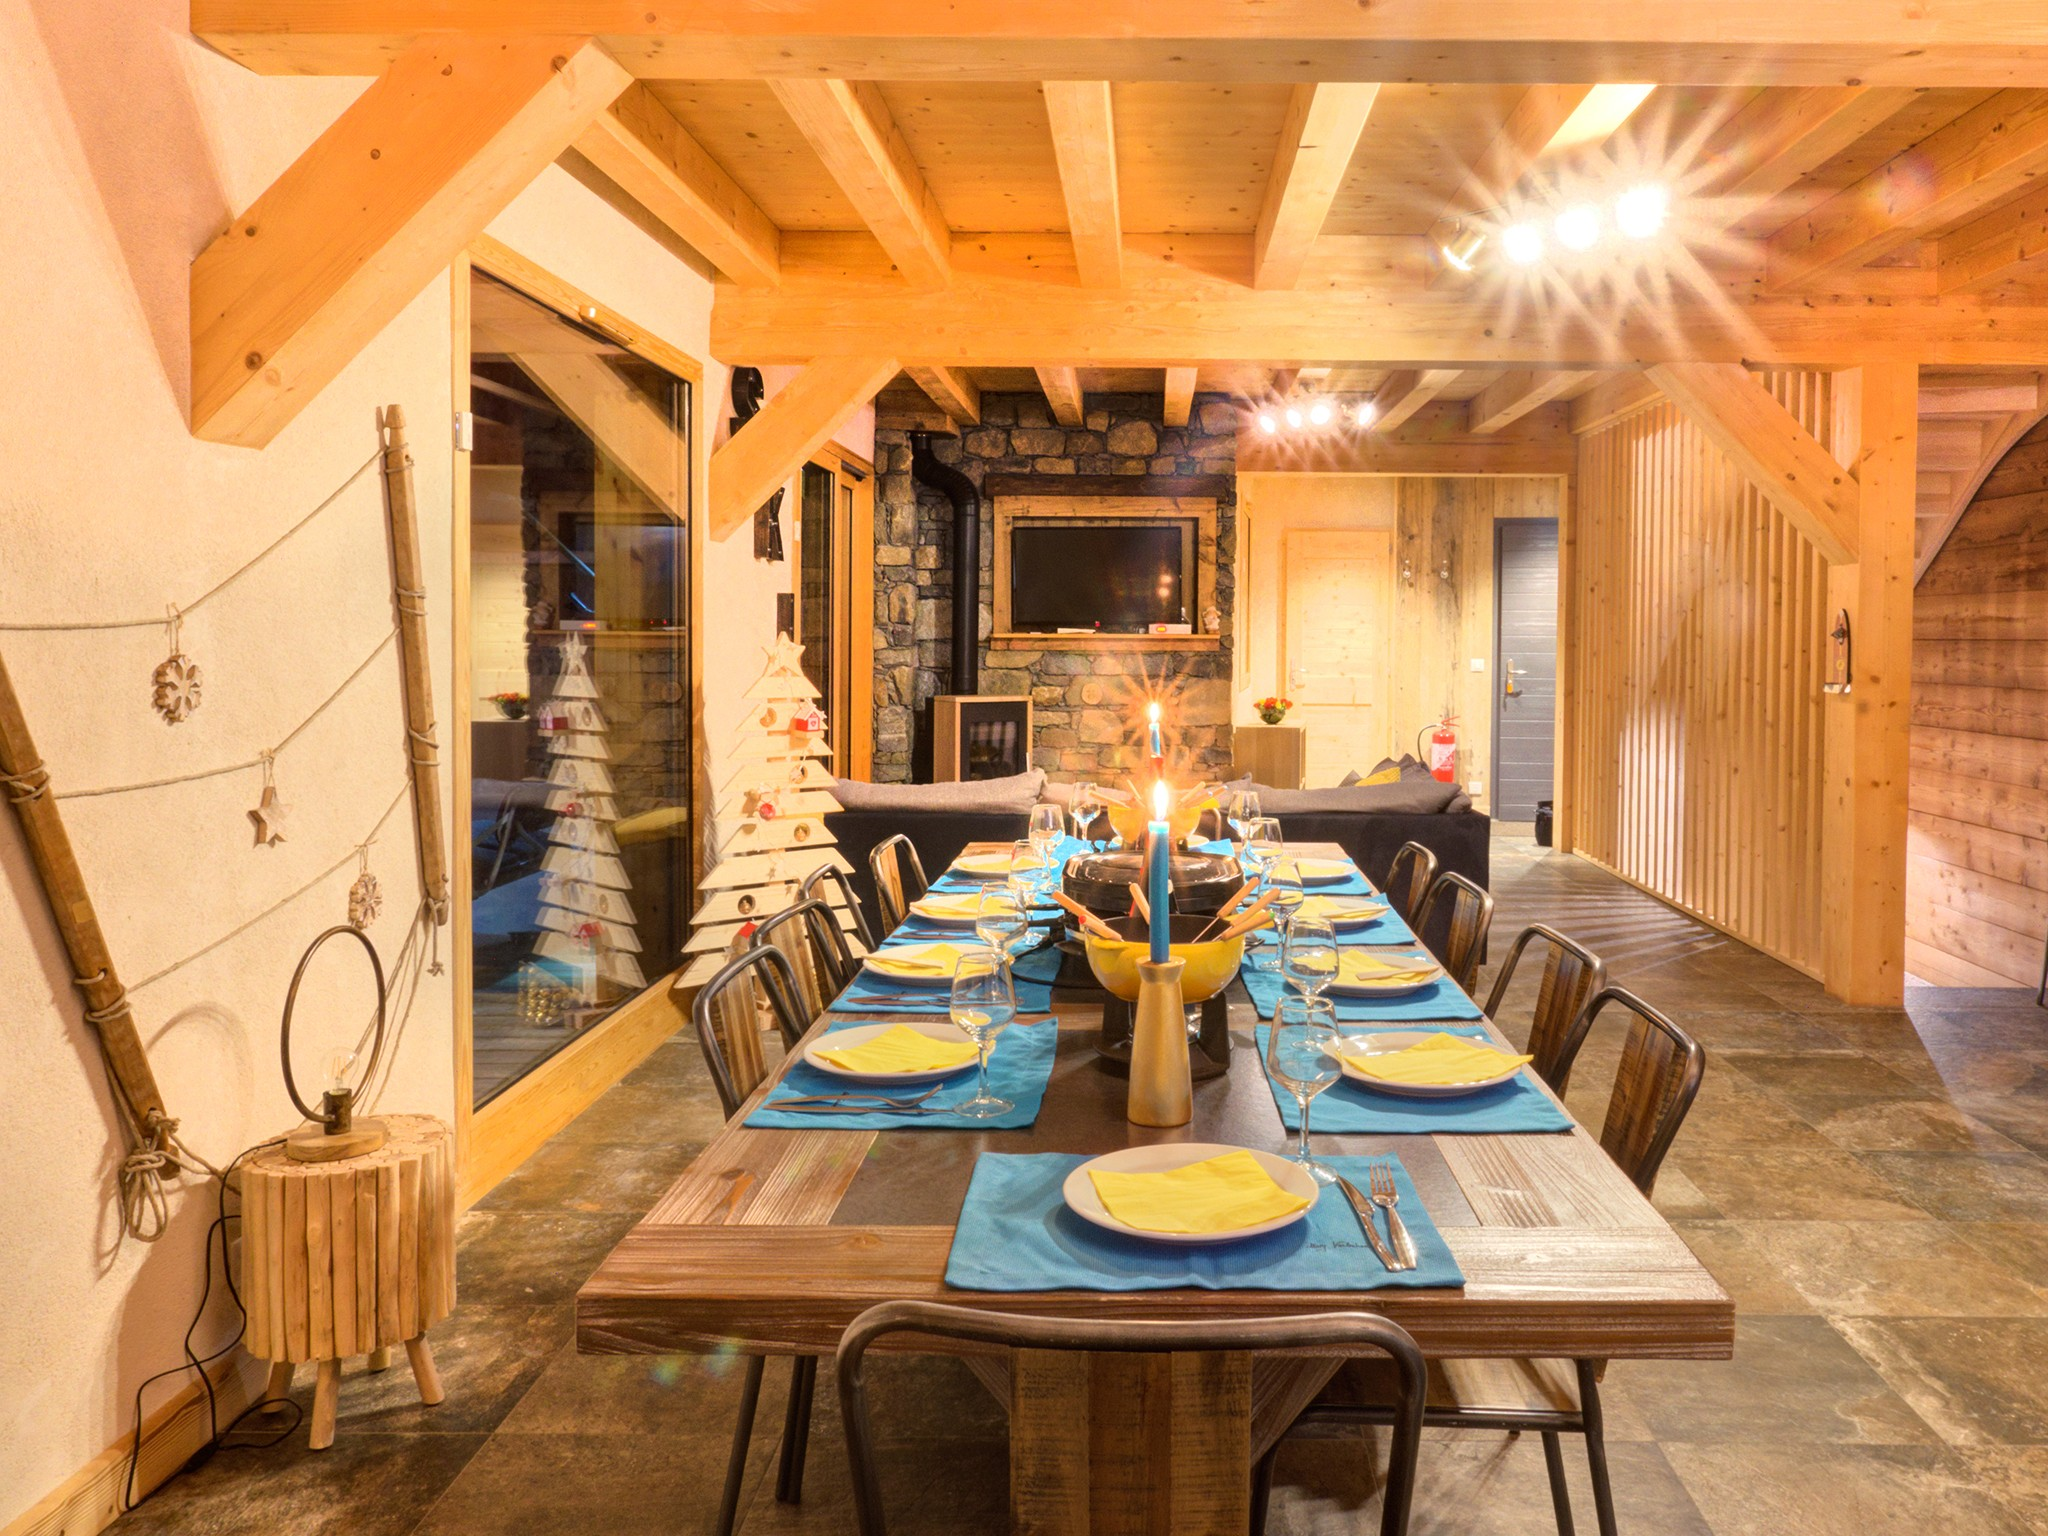 Chalet Ski Dream - dining area